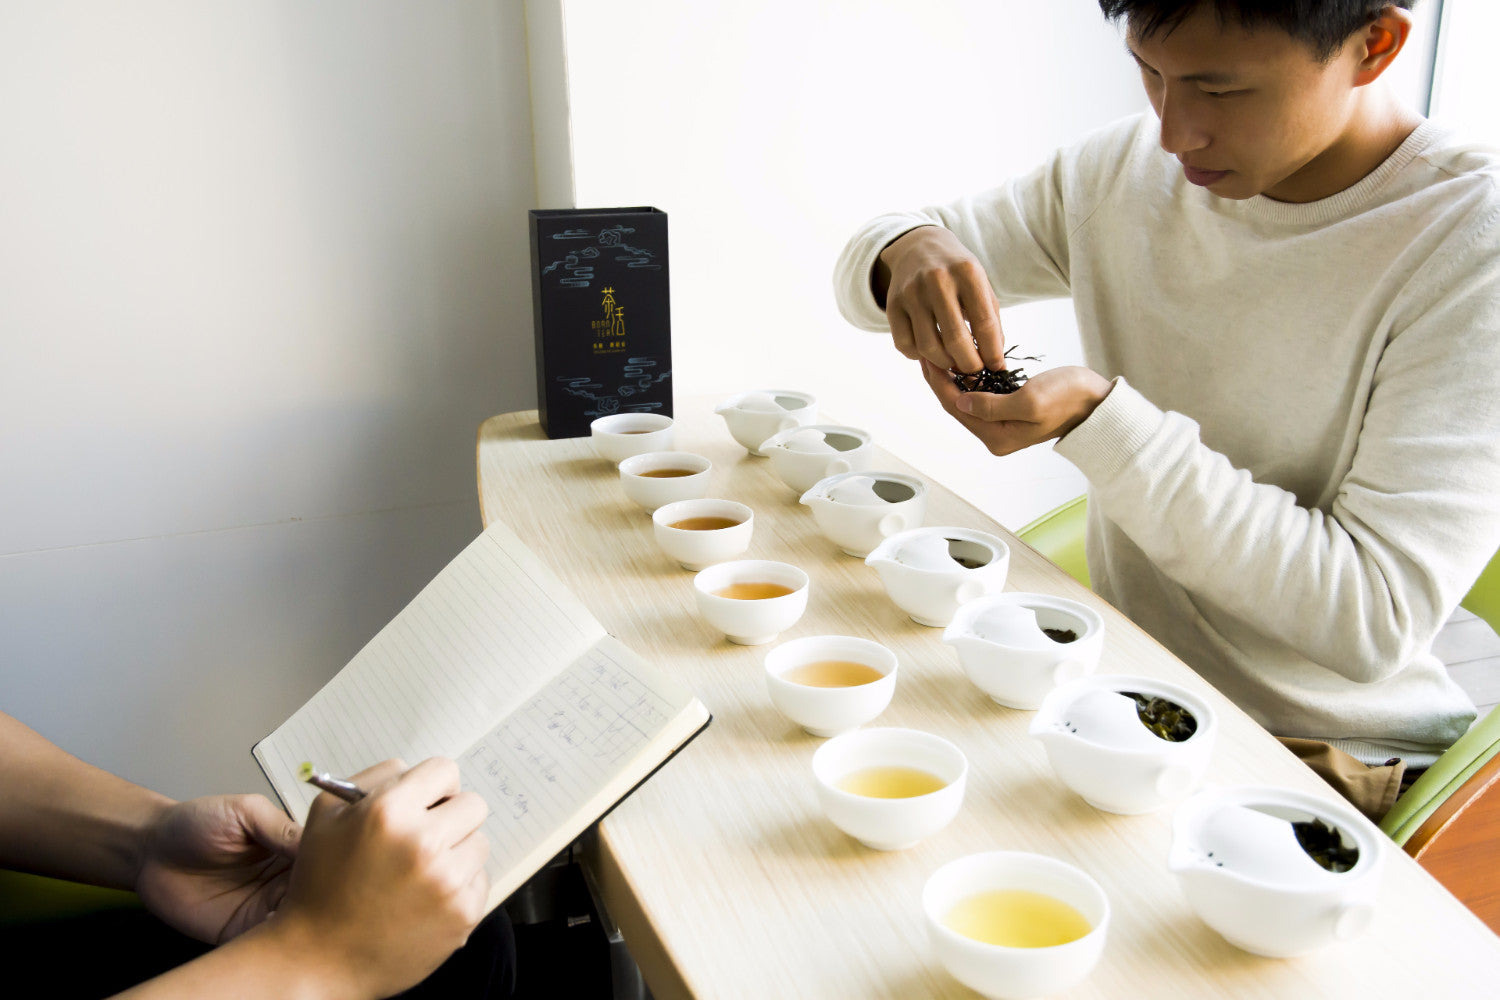 tasted many teas to find the best for you